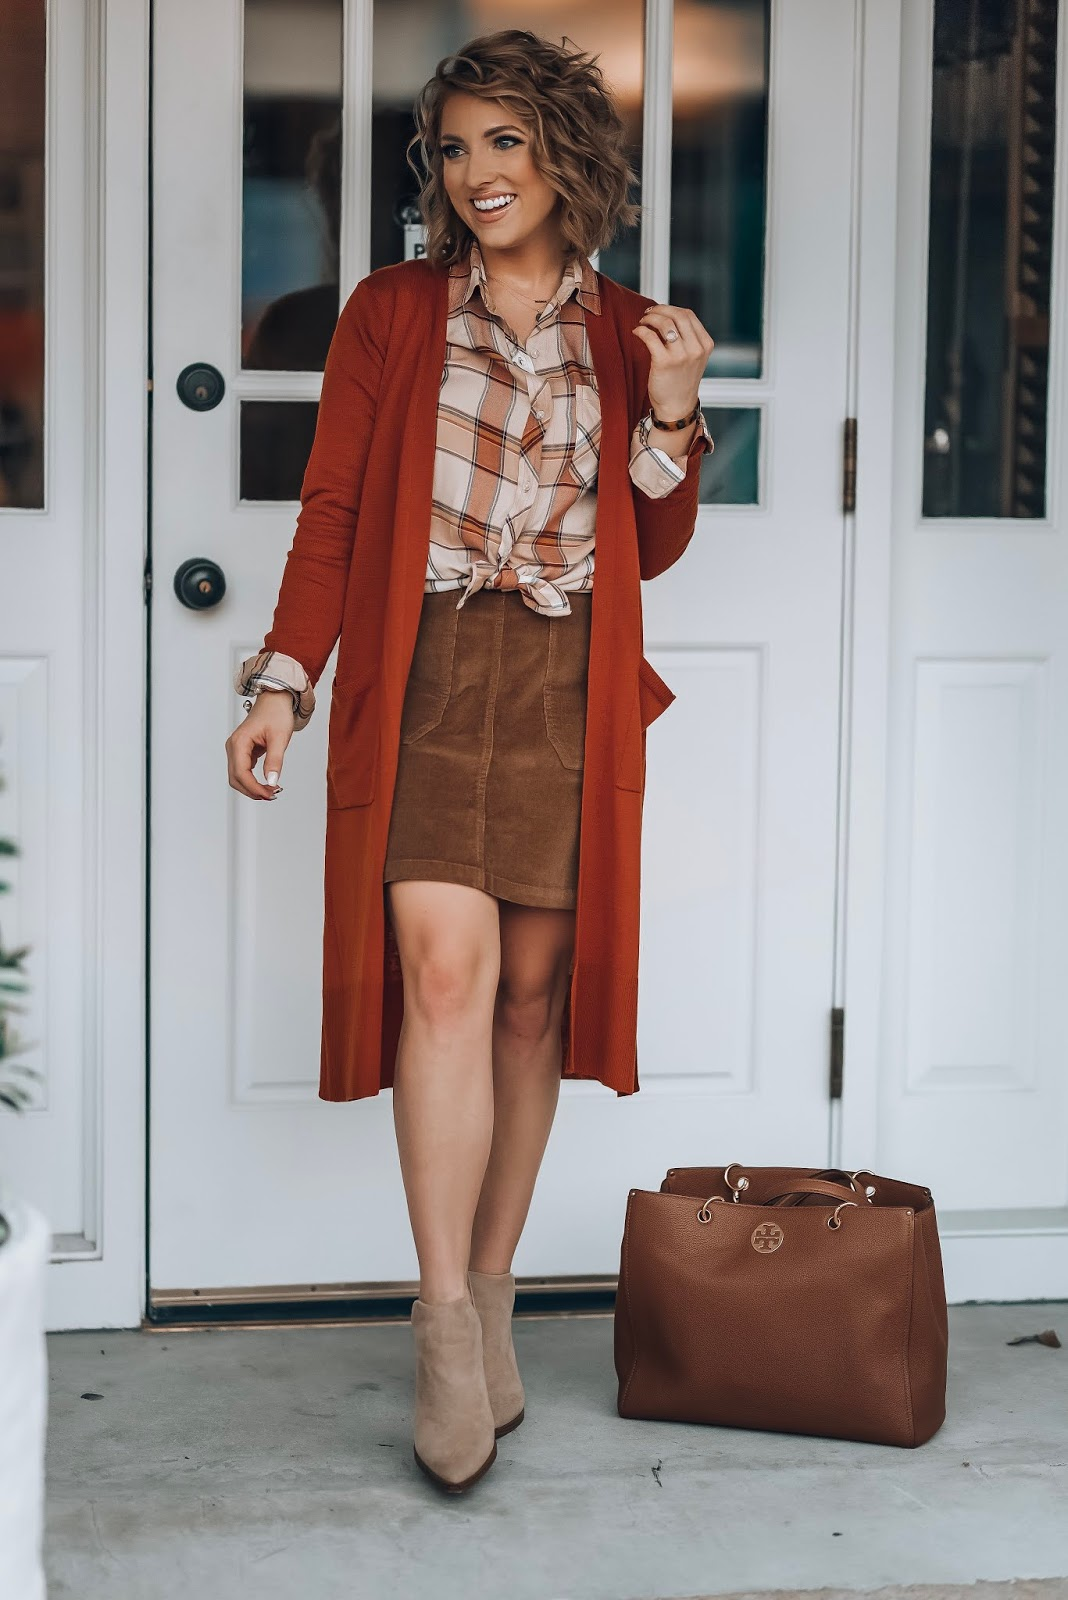 The Perfect Plaid Button Down With Longline Cardigan (both under $30) & Cord Skirt - Something Delightful Blog #fallstyle #targetstyle #fallfashion #affordablestyle